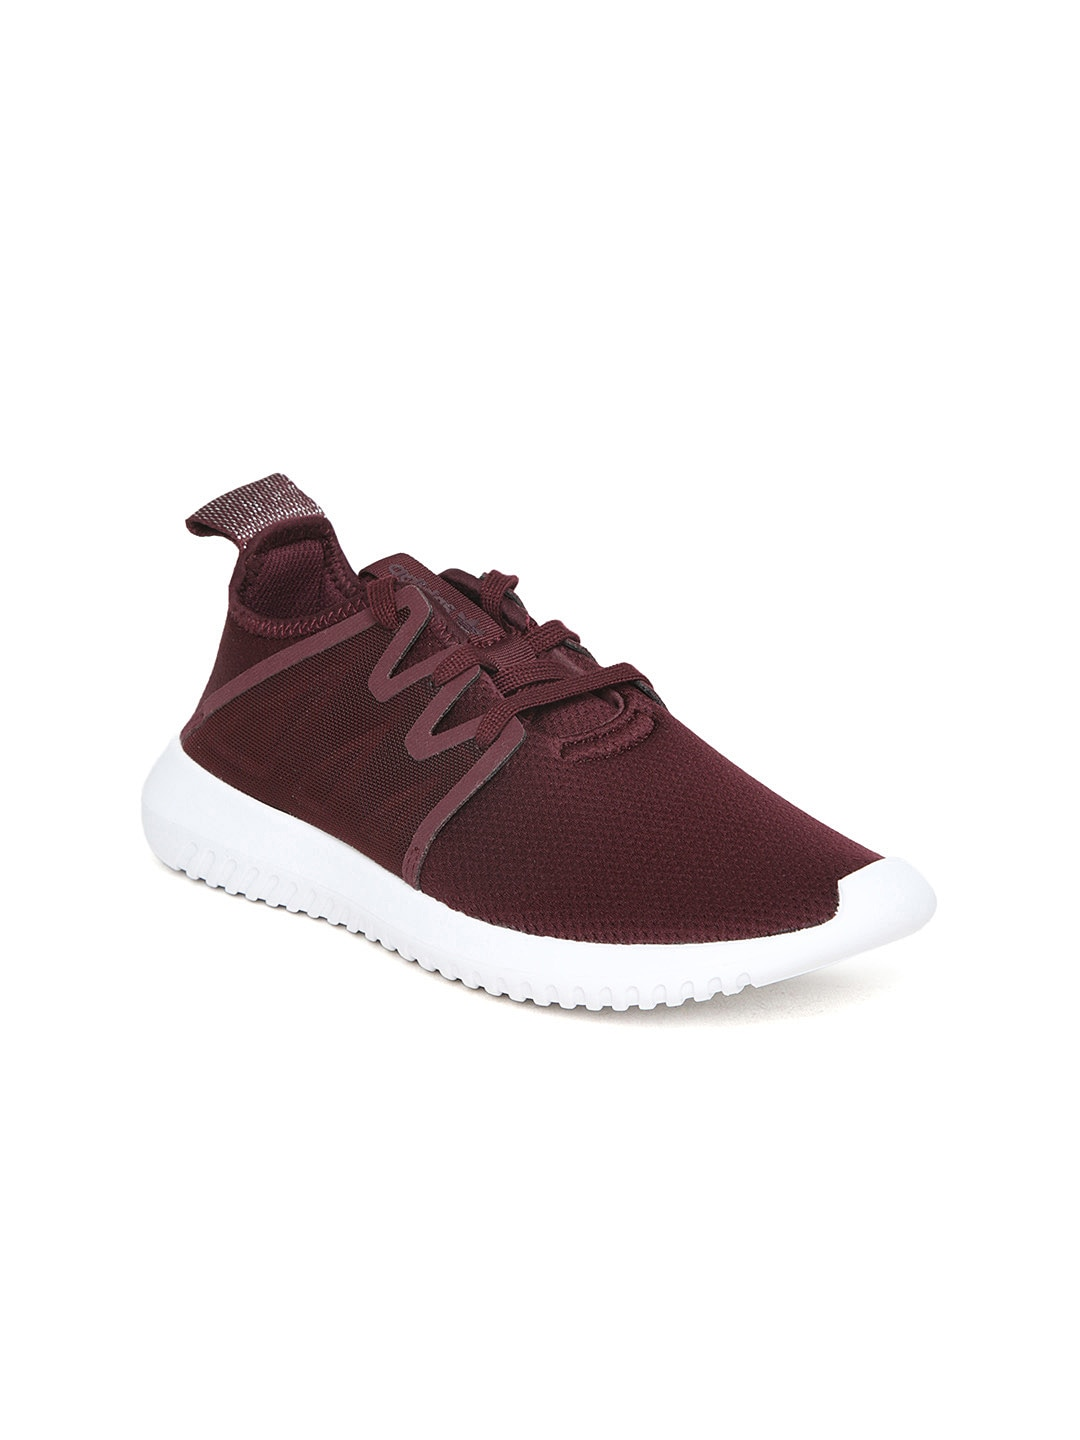 Adidas Originals Women Burgundy Tubular Viral2 Sneakers image